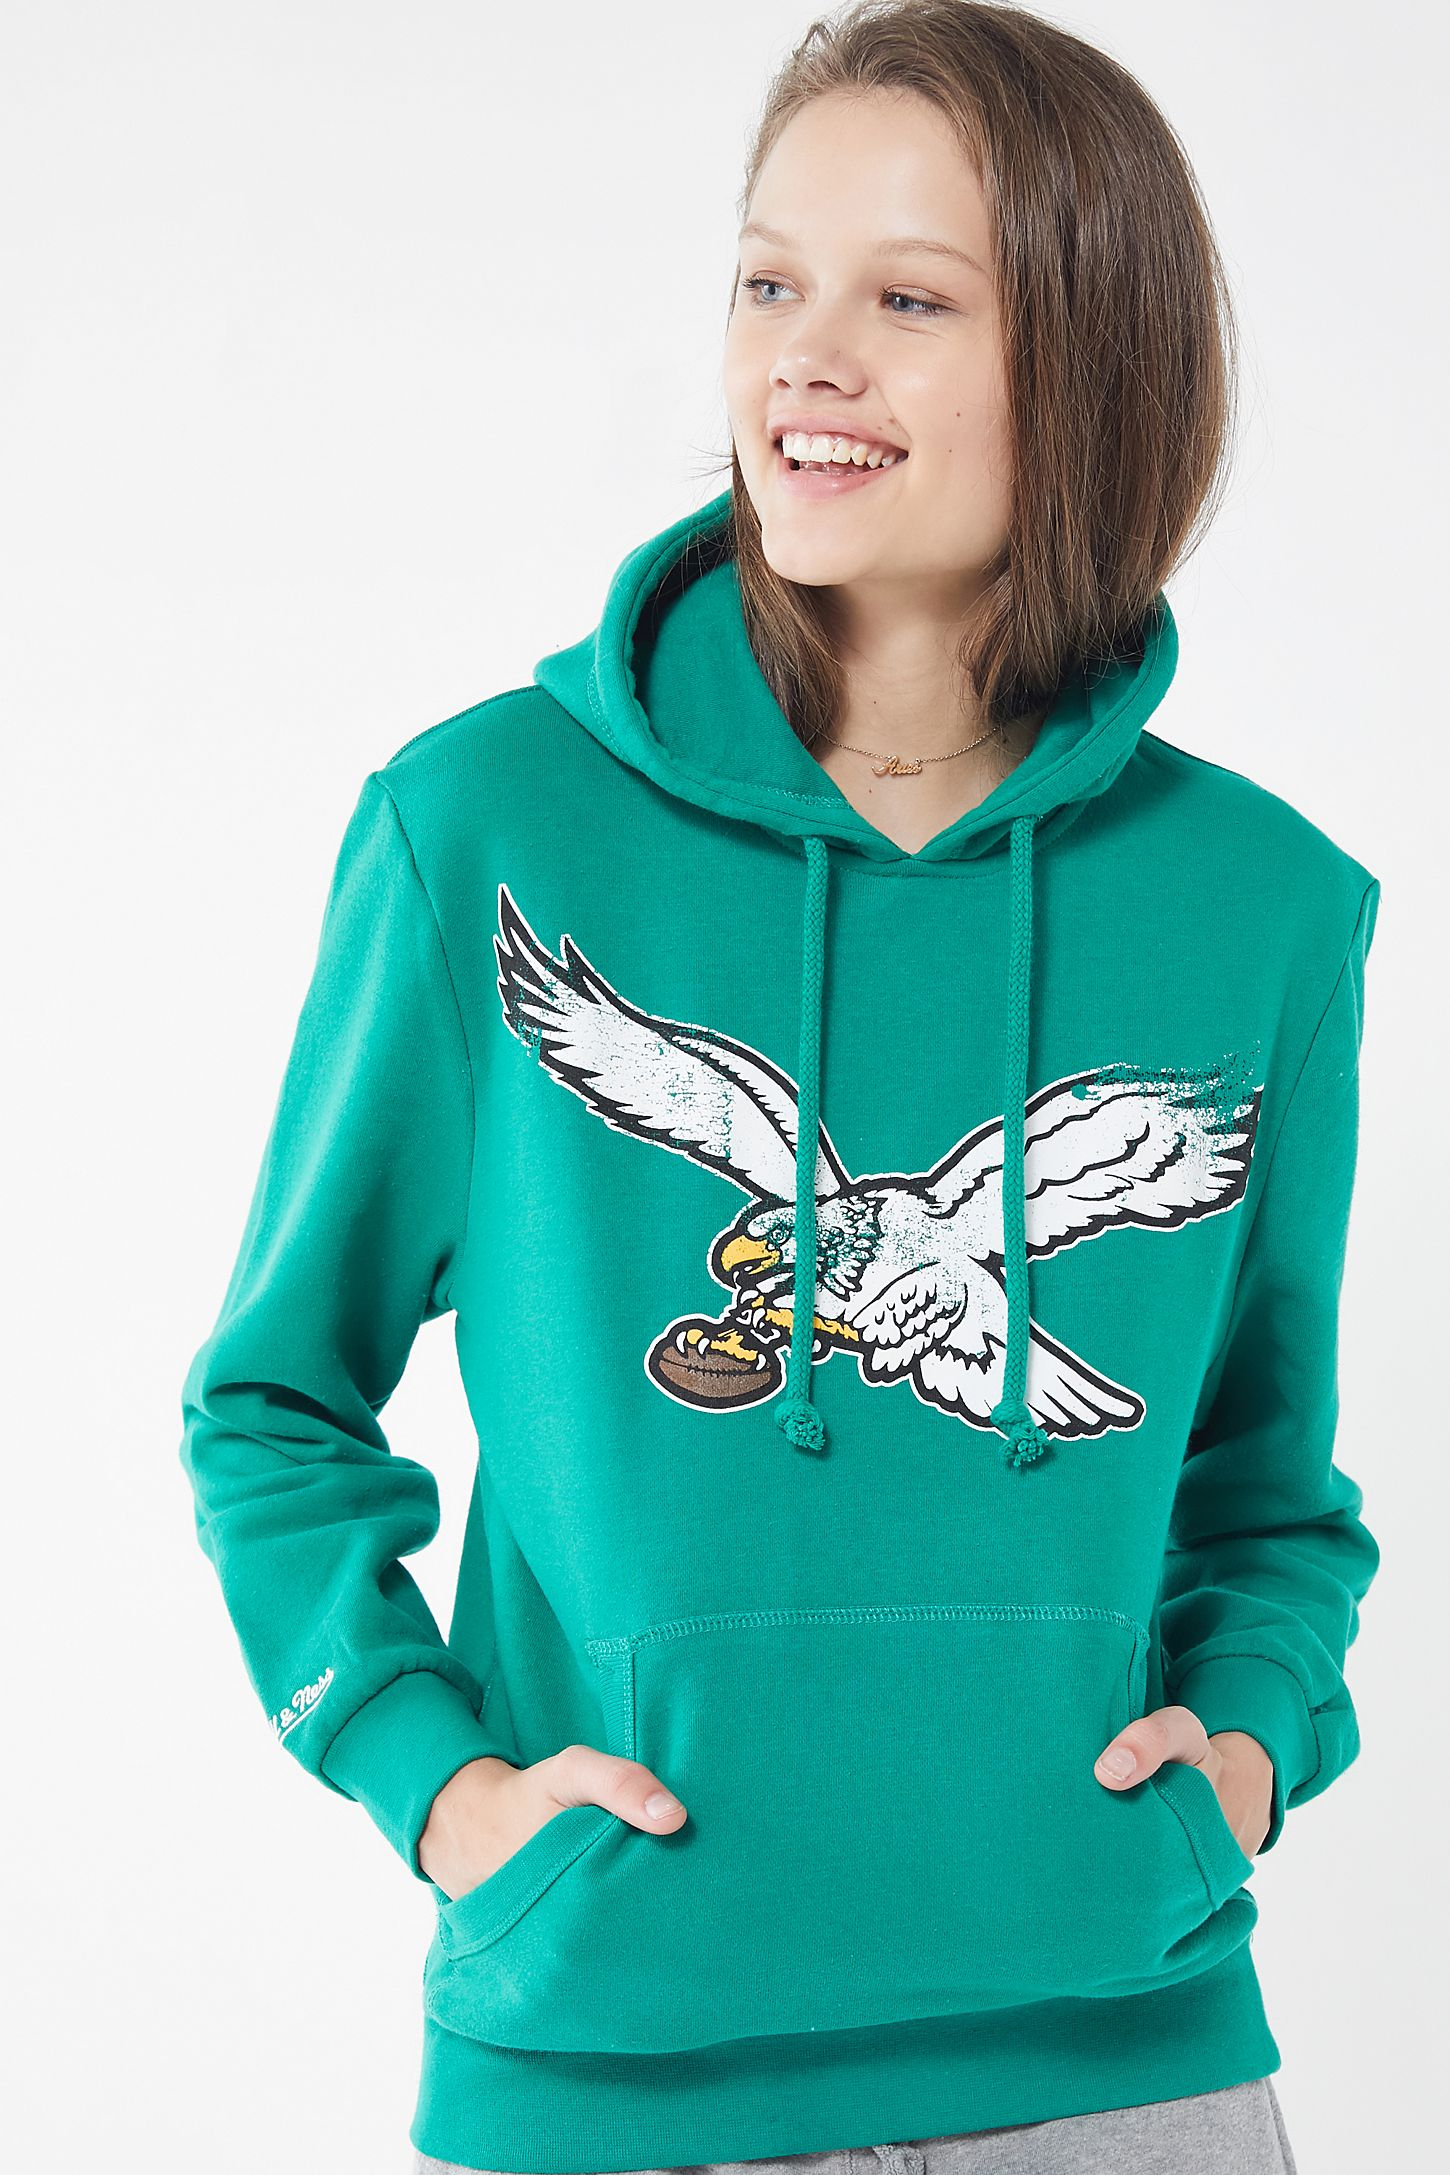 buy popular 88dfb 2f1b8 Mitchell & Ness Philadelphia Eagles Hoodie Sweatshirt